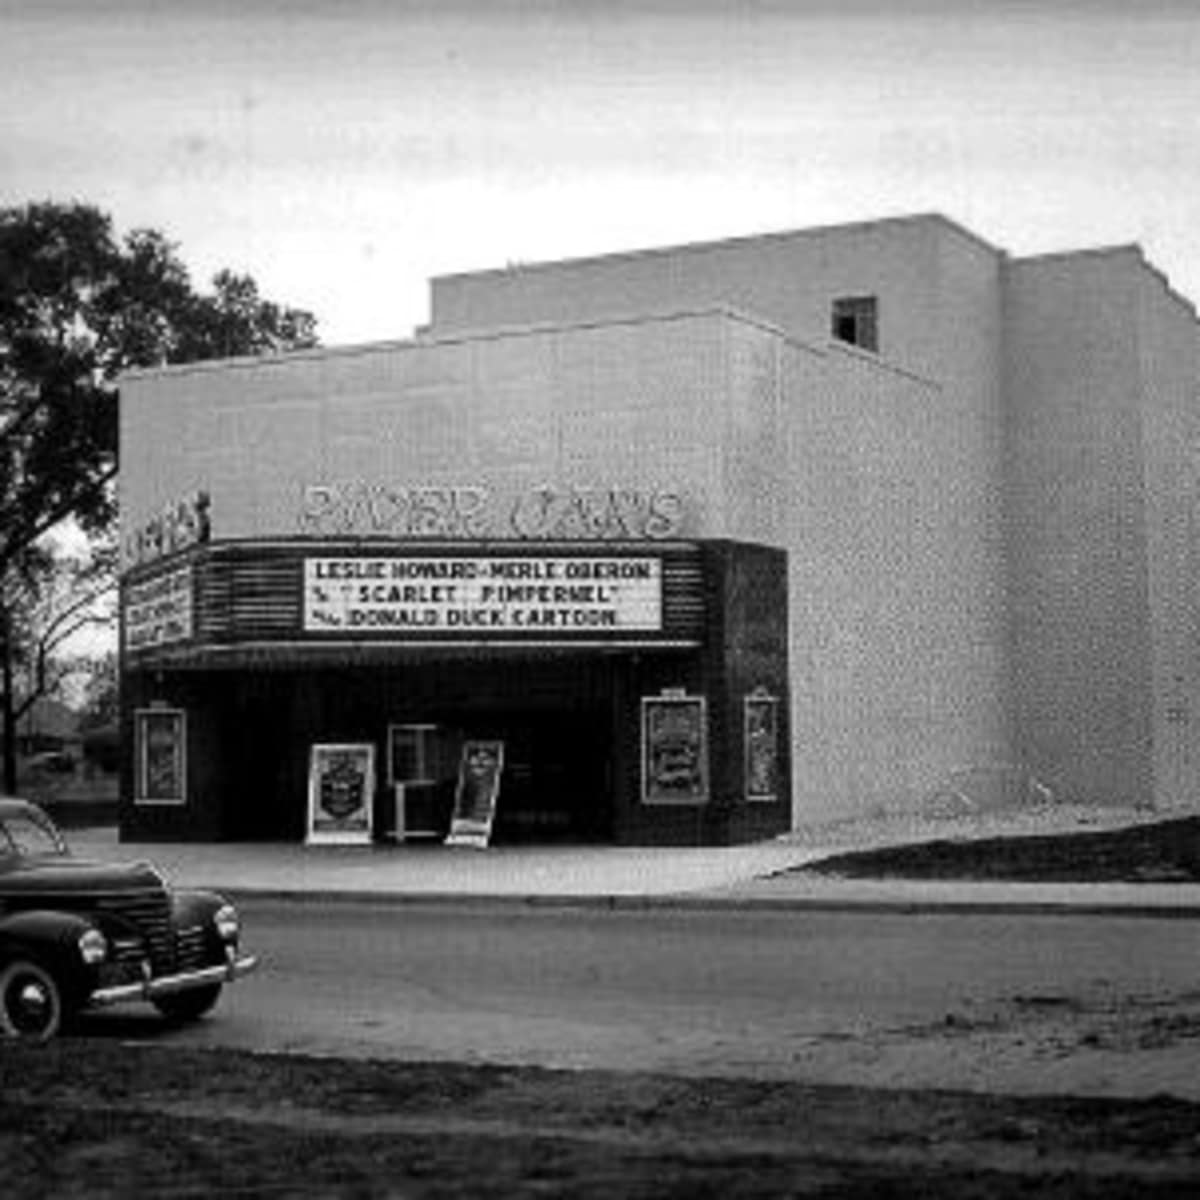 News_River Oaks Theatre_archival image